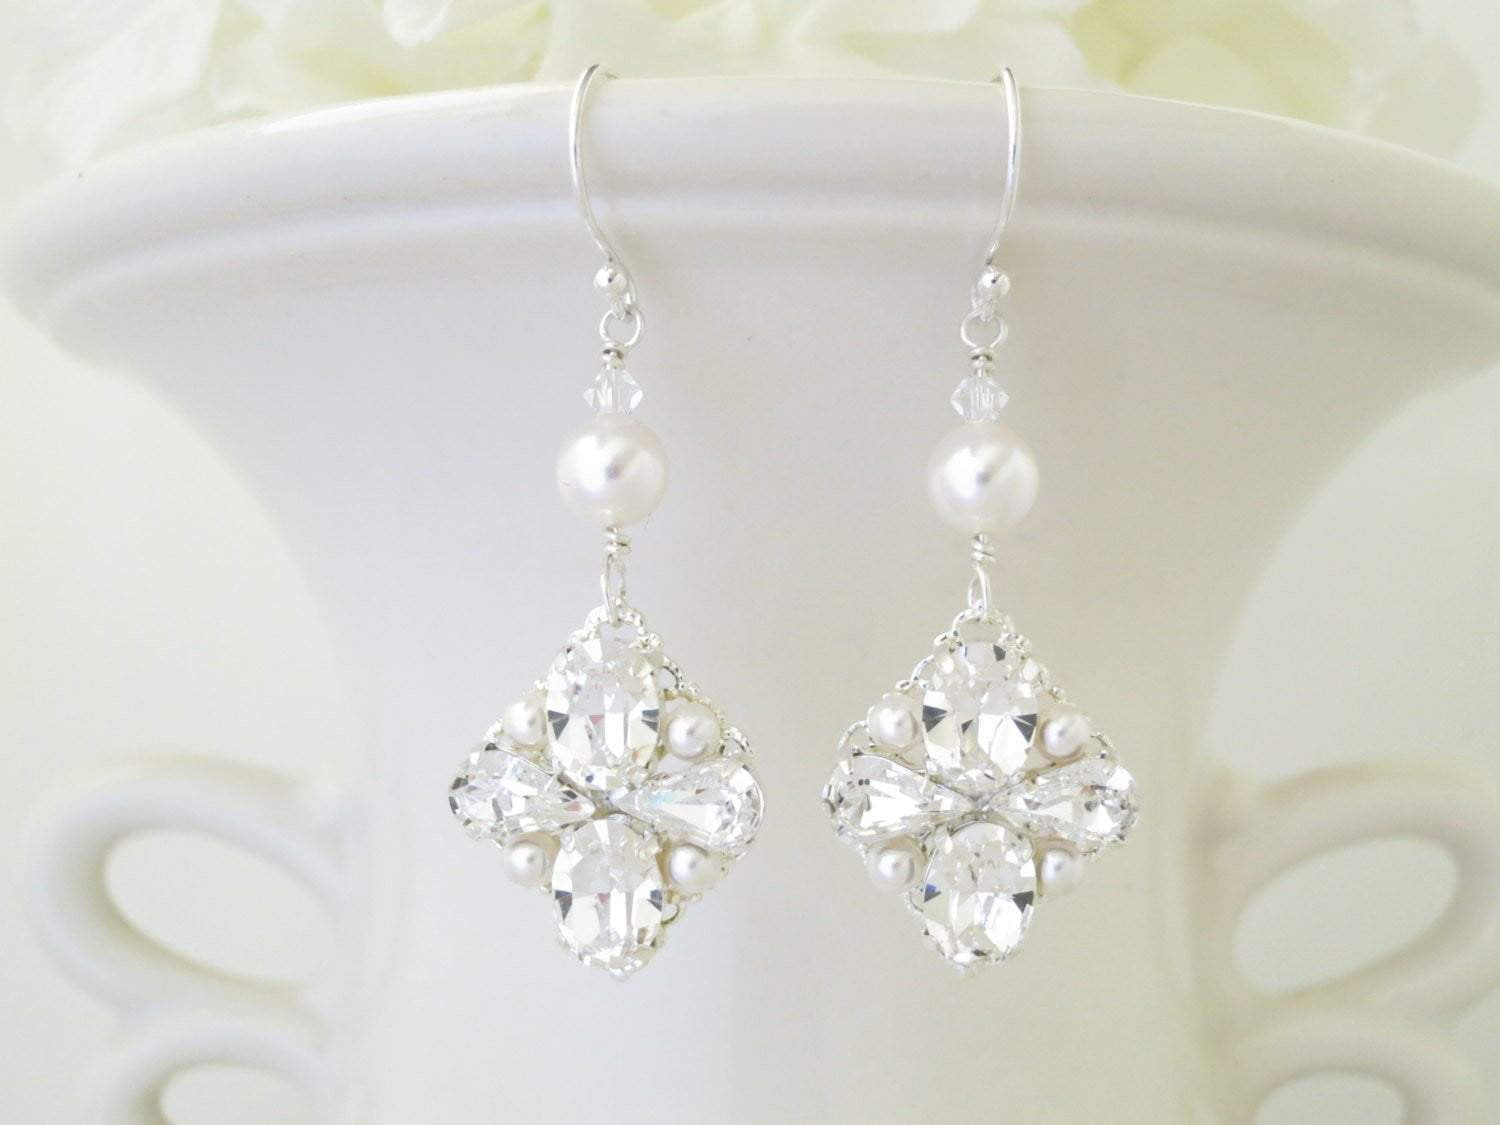 JILLIAN:  Traditional Rhinestone and Pearl Bridal Earrings - BlingBaddaBoom - Minimalist, Vintage, Modern Wedding and Bridal Jewelry